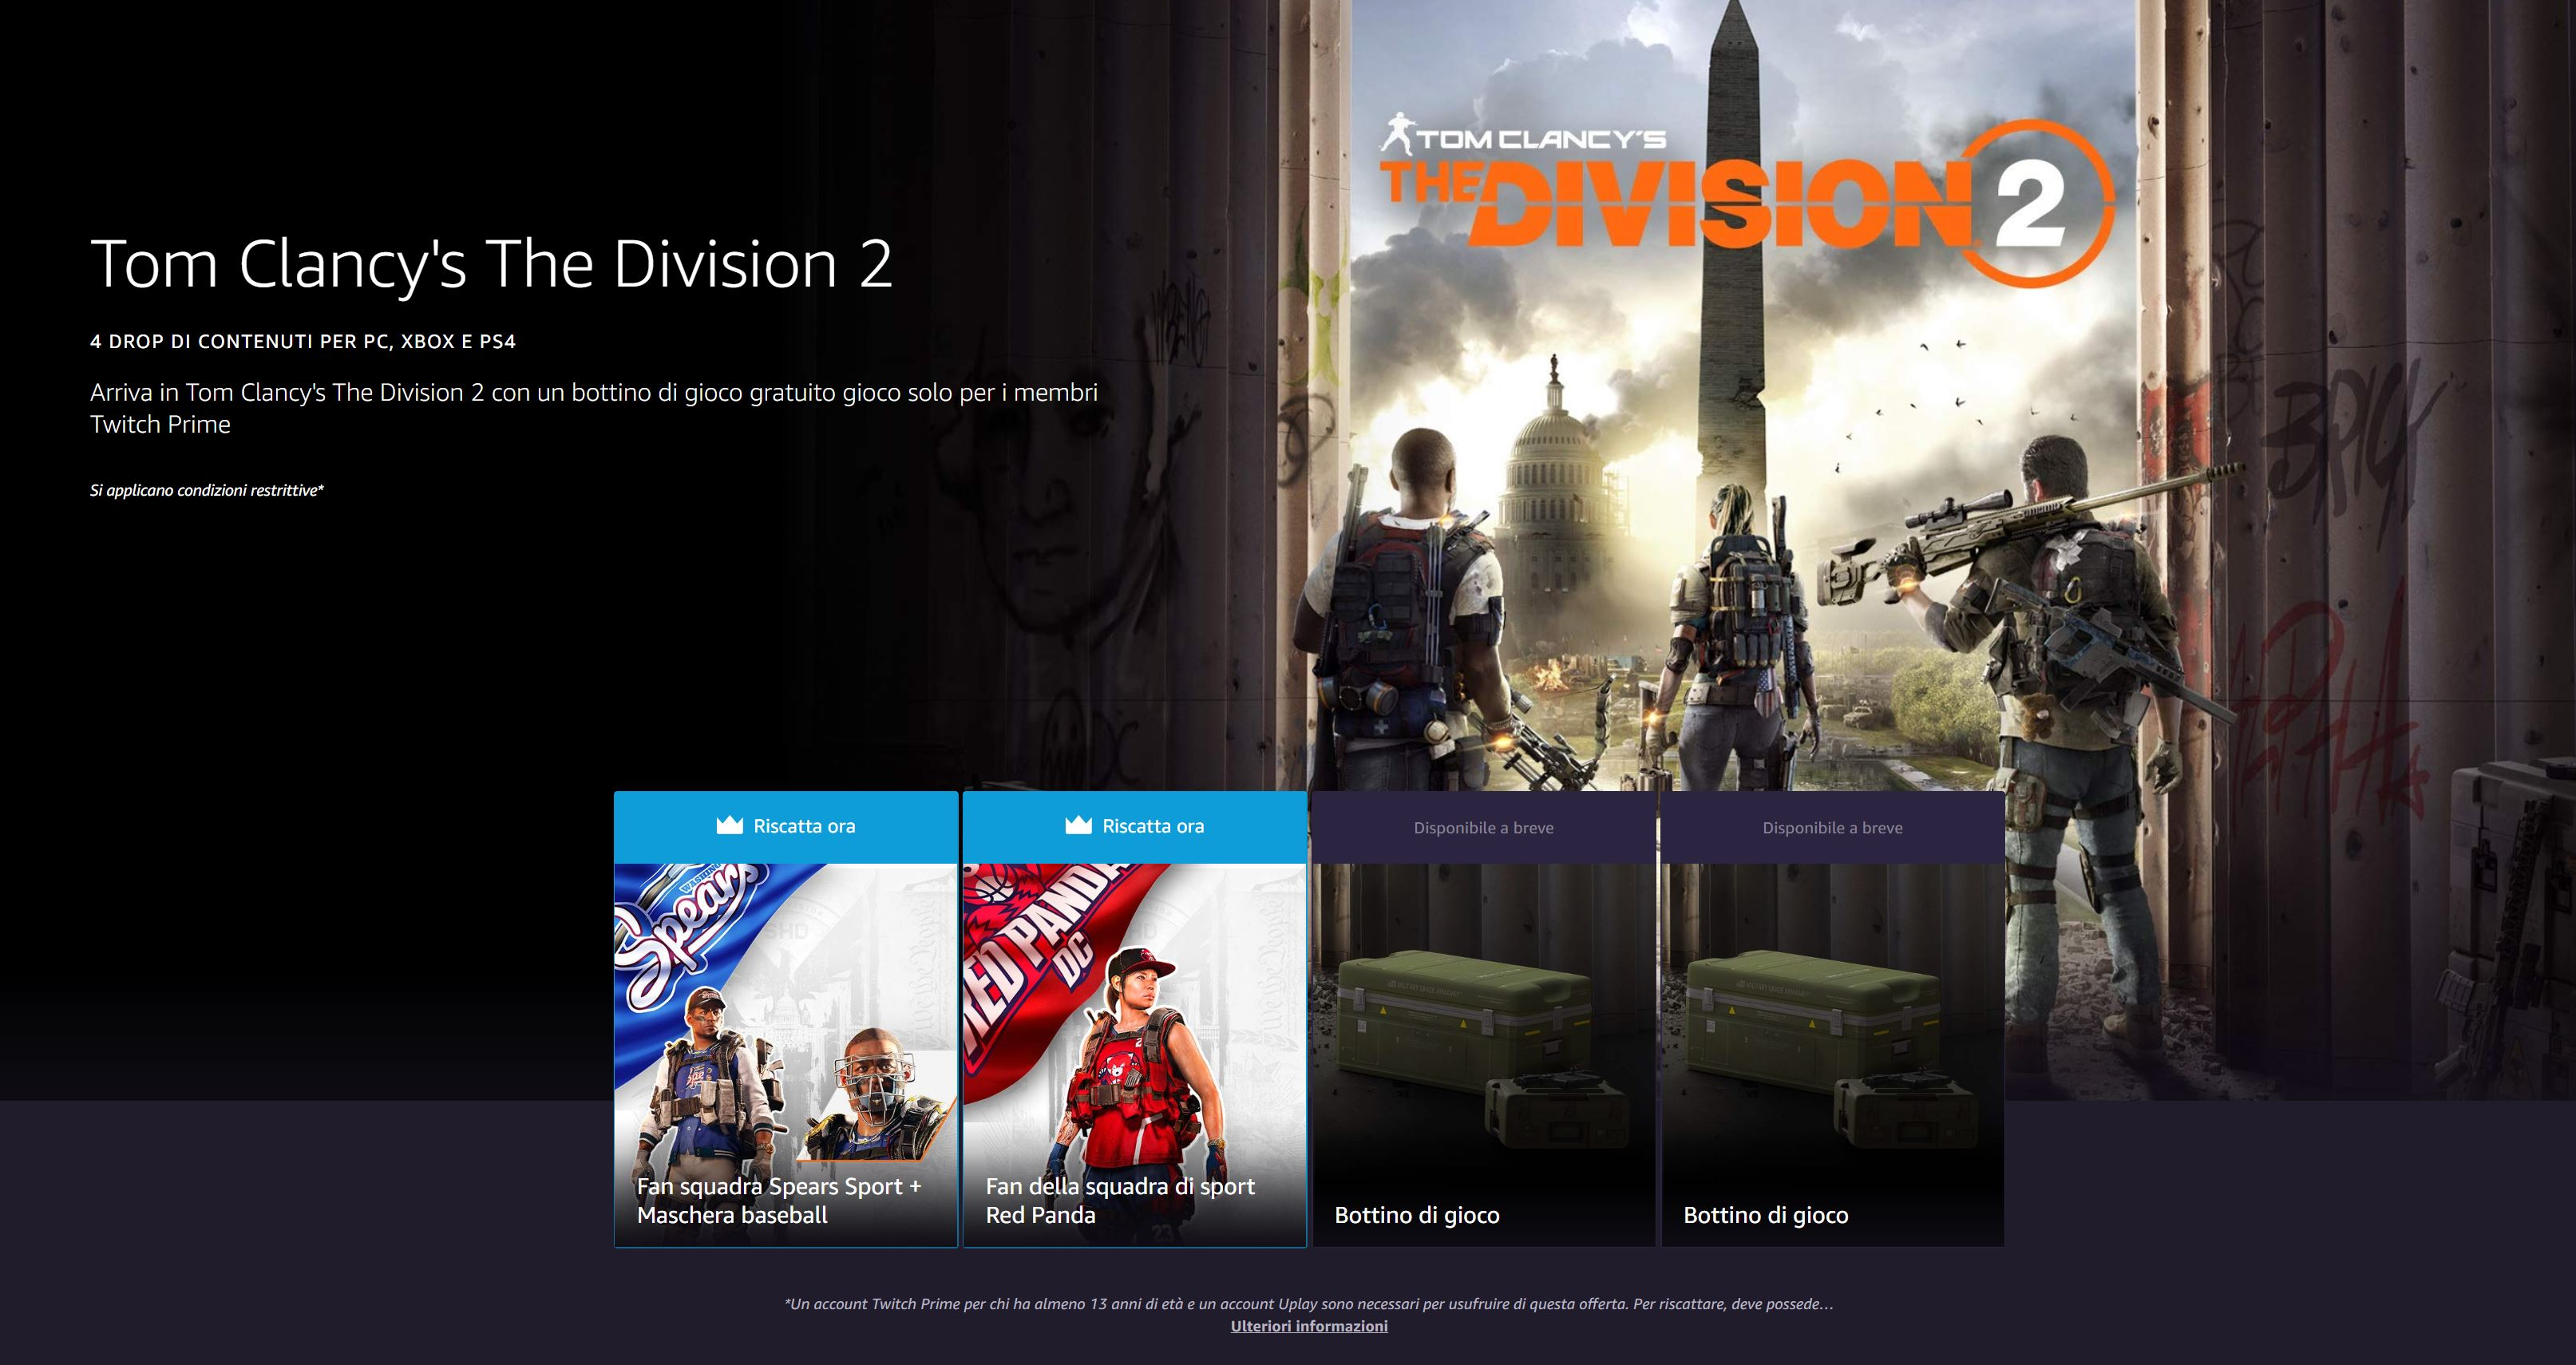 The Division 2: The New Twitch Prime Pack With the Red Panda